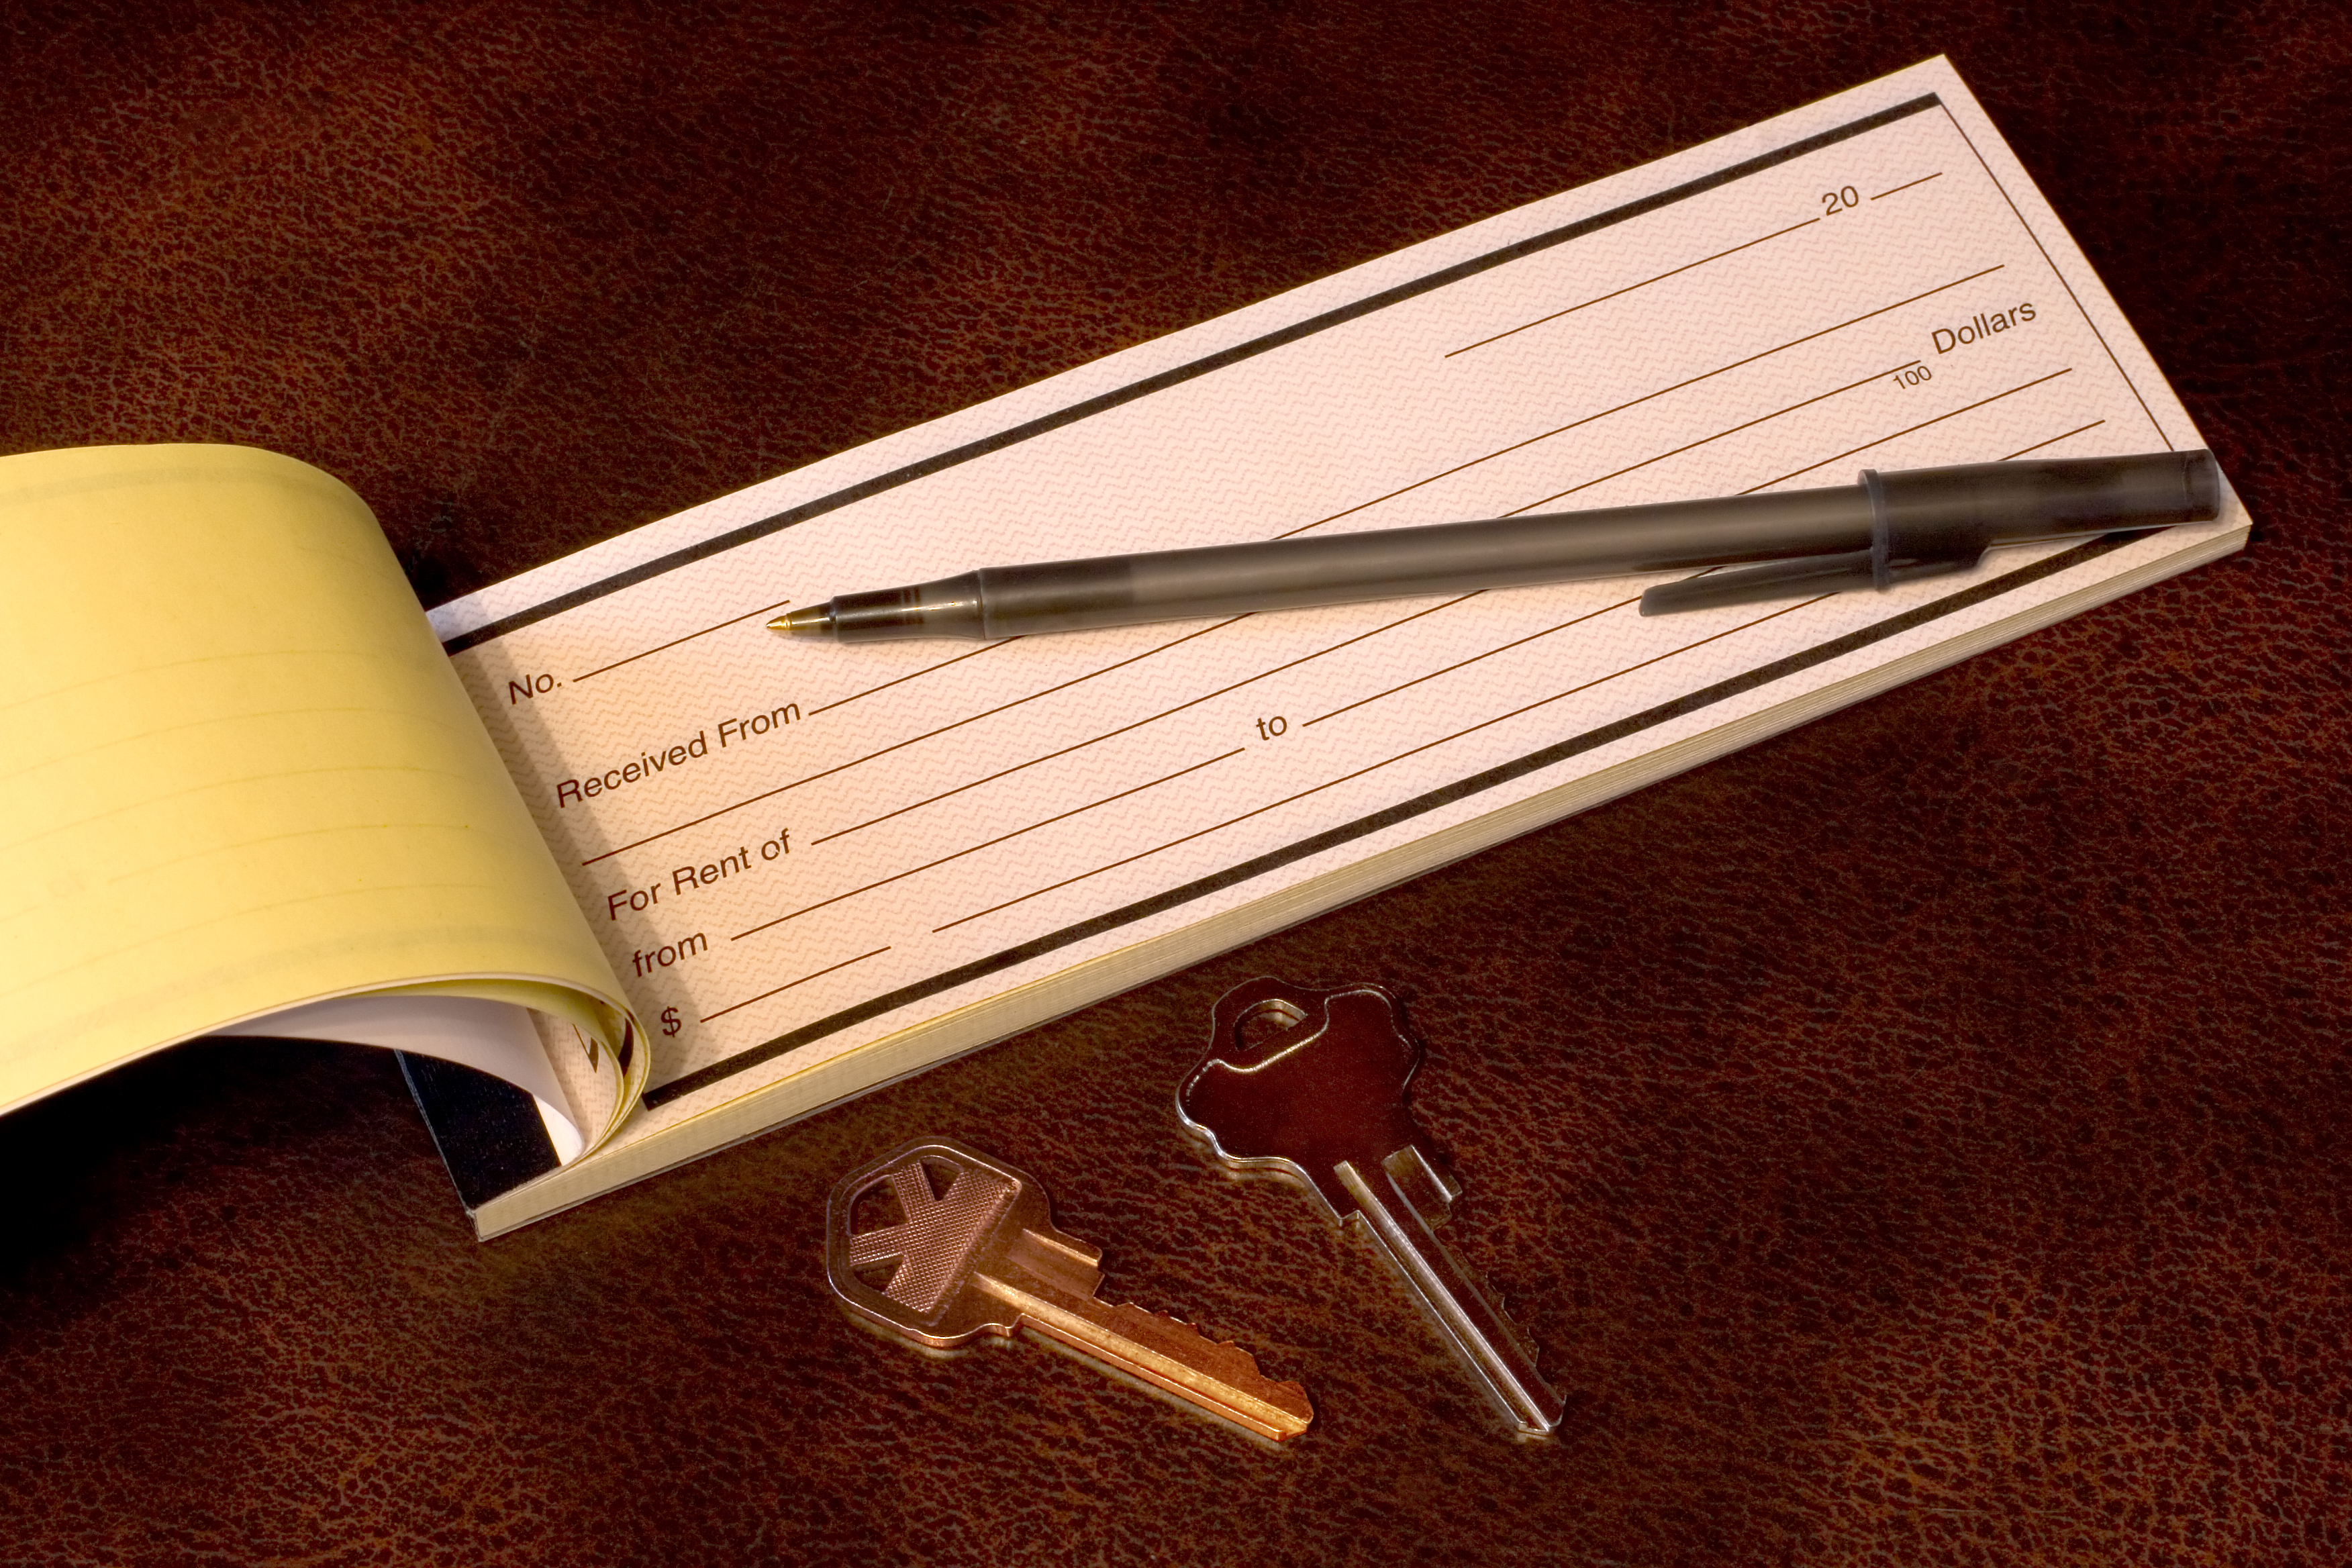 A rent receipt book with keys